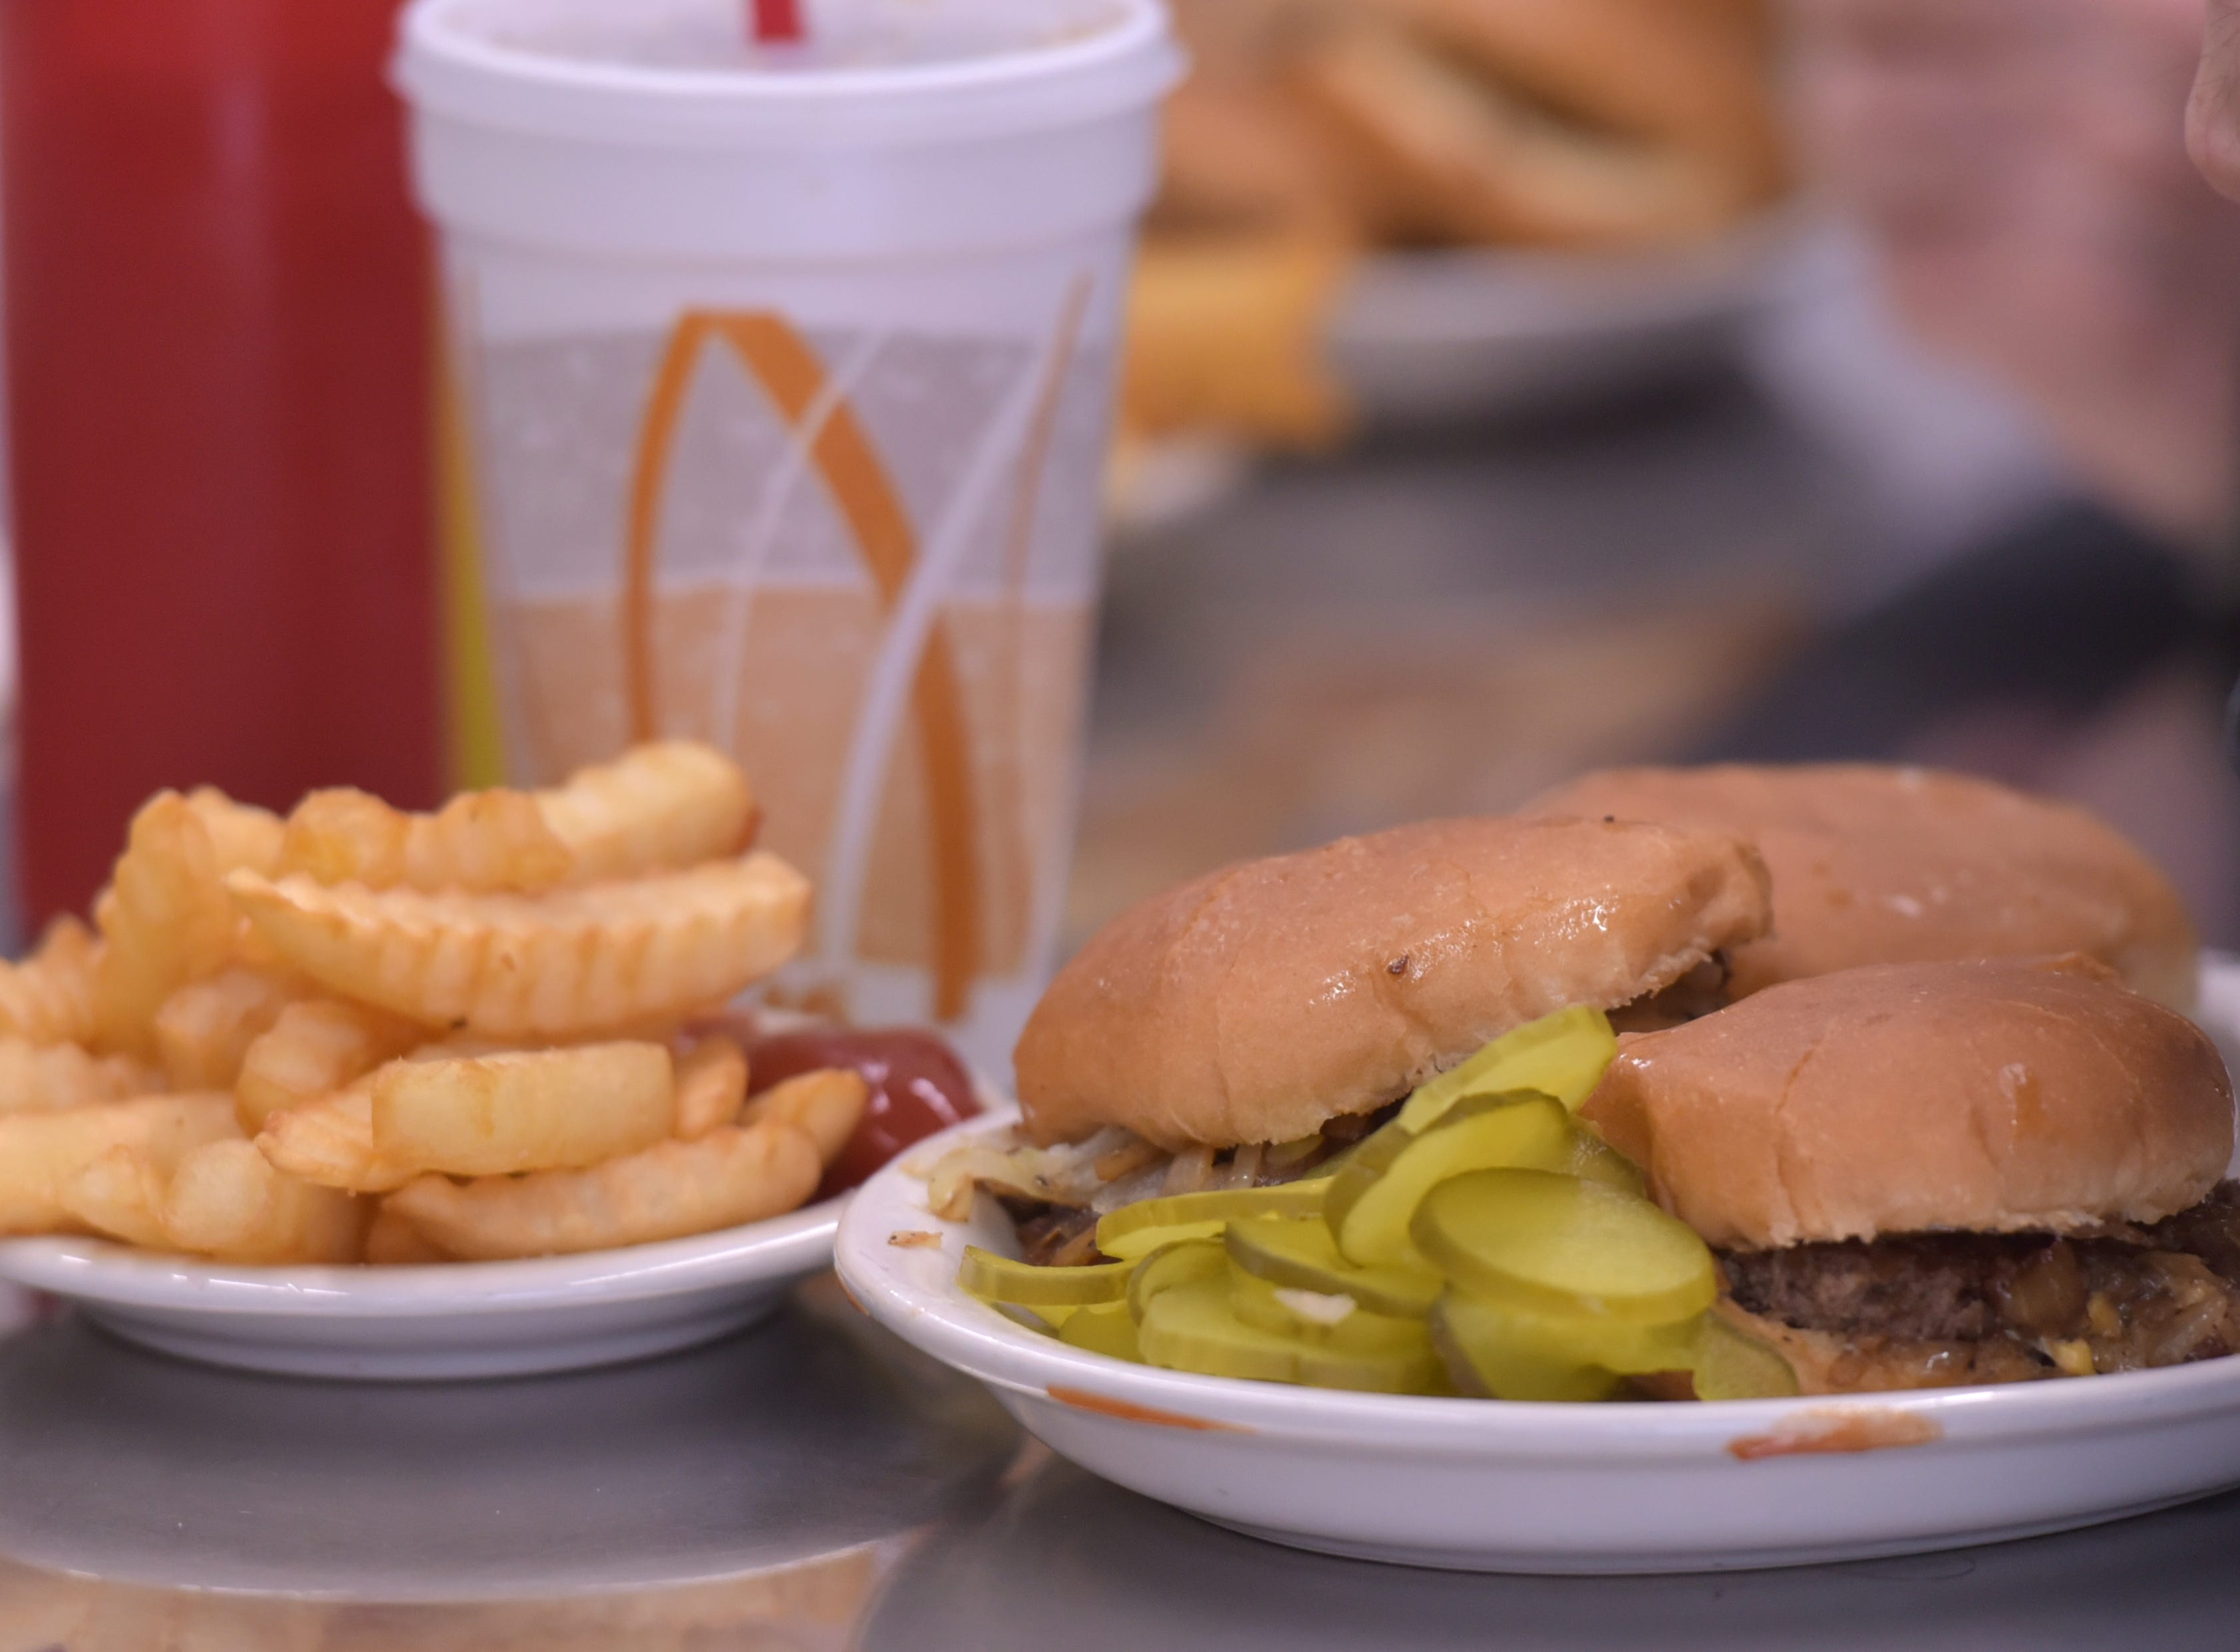 A wonderful sight at Bates Burgers: a plate with three cheeseburgers with onions and pickles and those krinkle-cut fries.